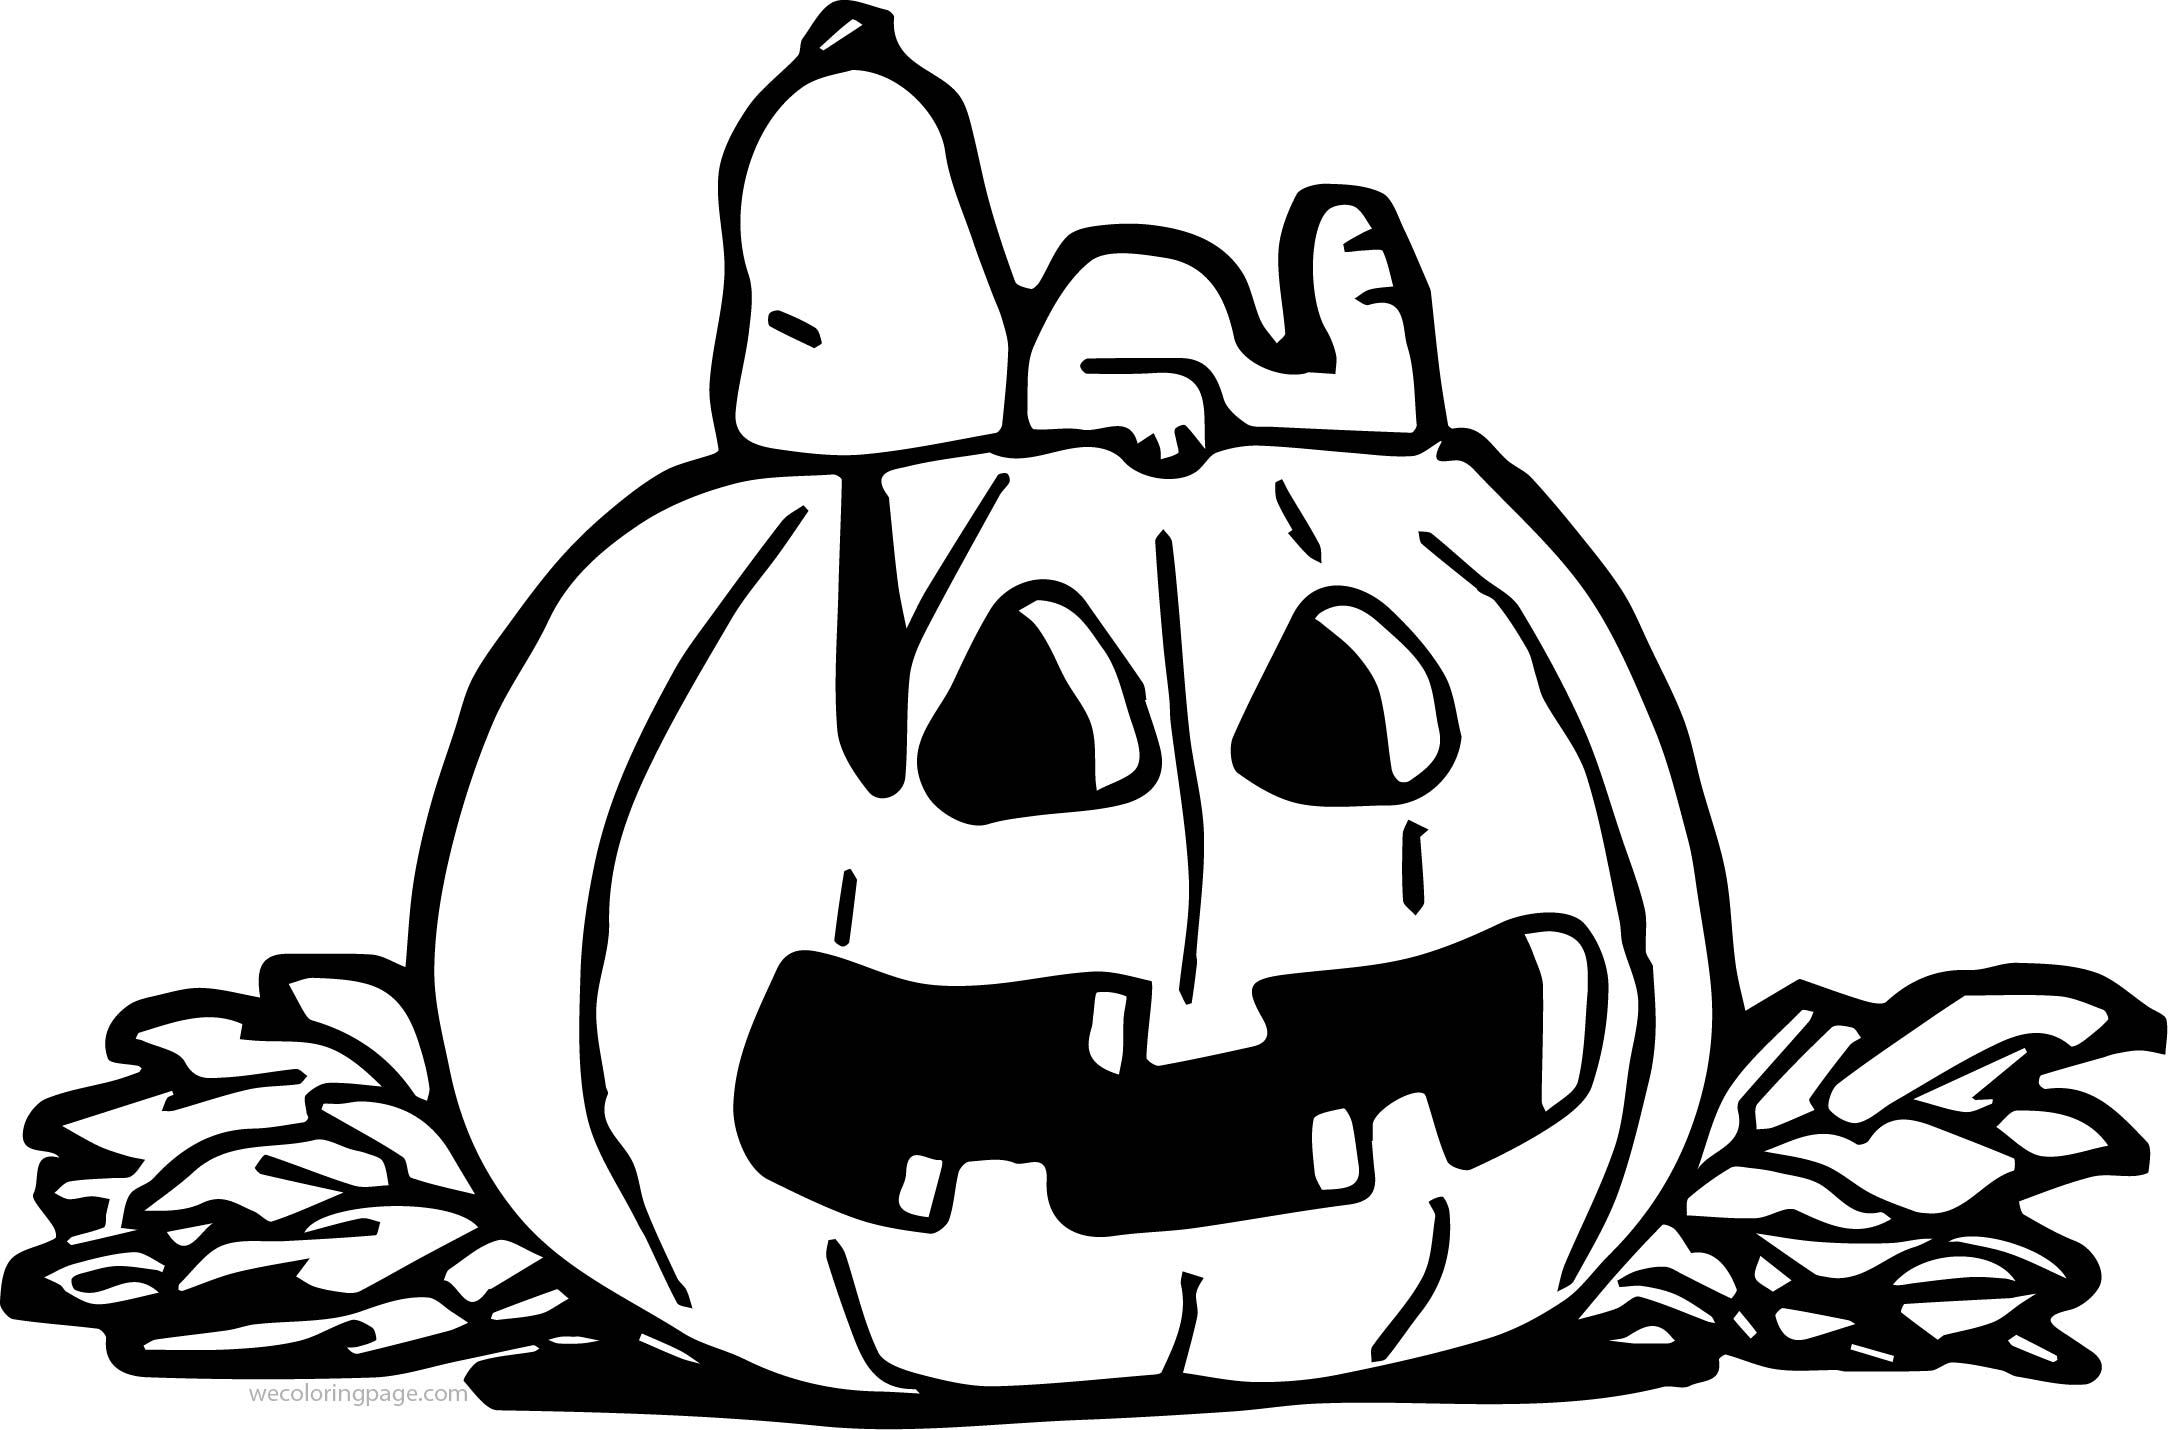 Halloween Snoopy Pumpkin Coloring Page Wecoloringpage